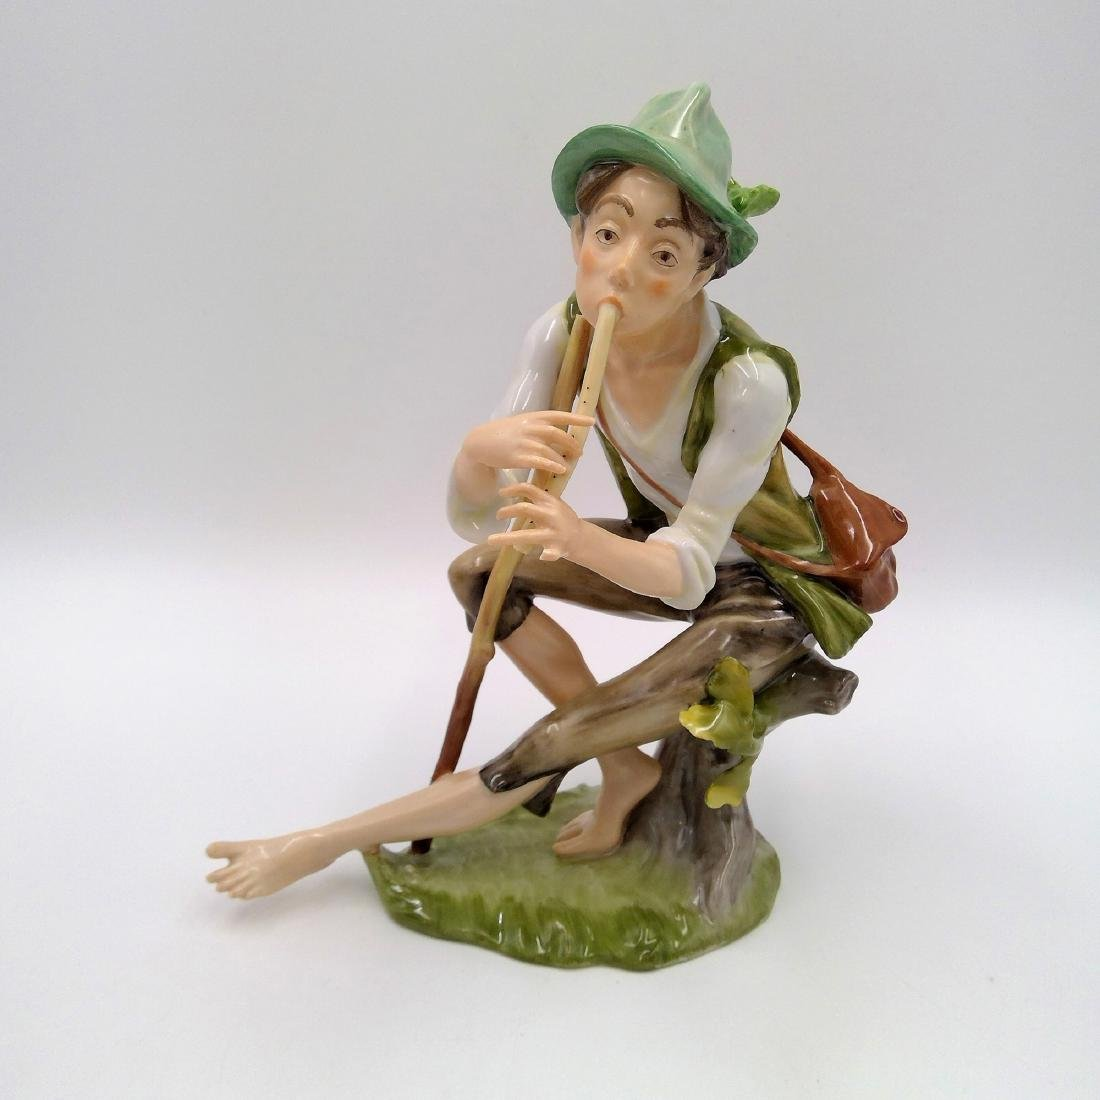 GROUP OF 3 KAISER GERMAN PORCELAIN FIGURINES - 8